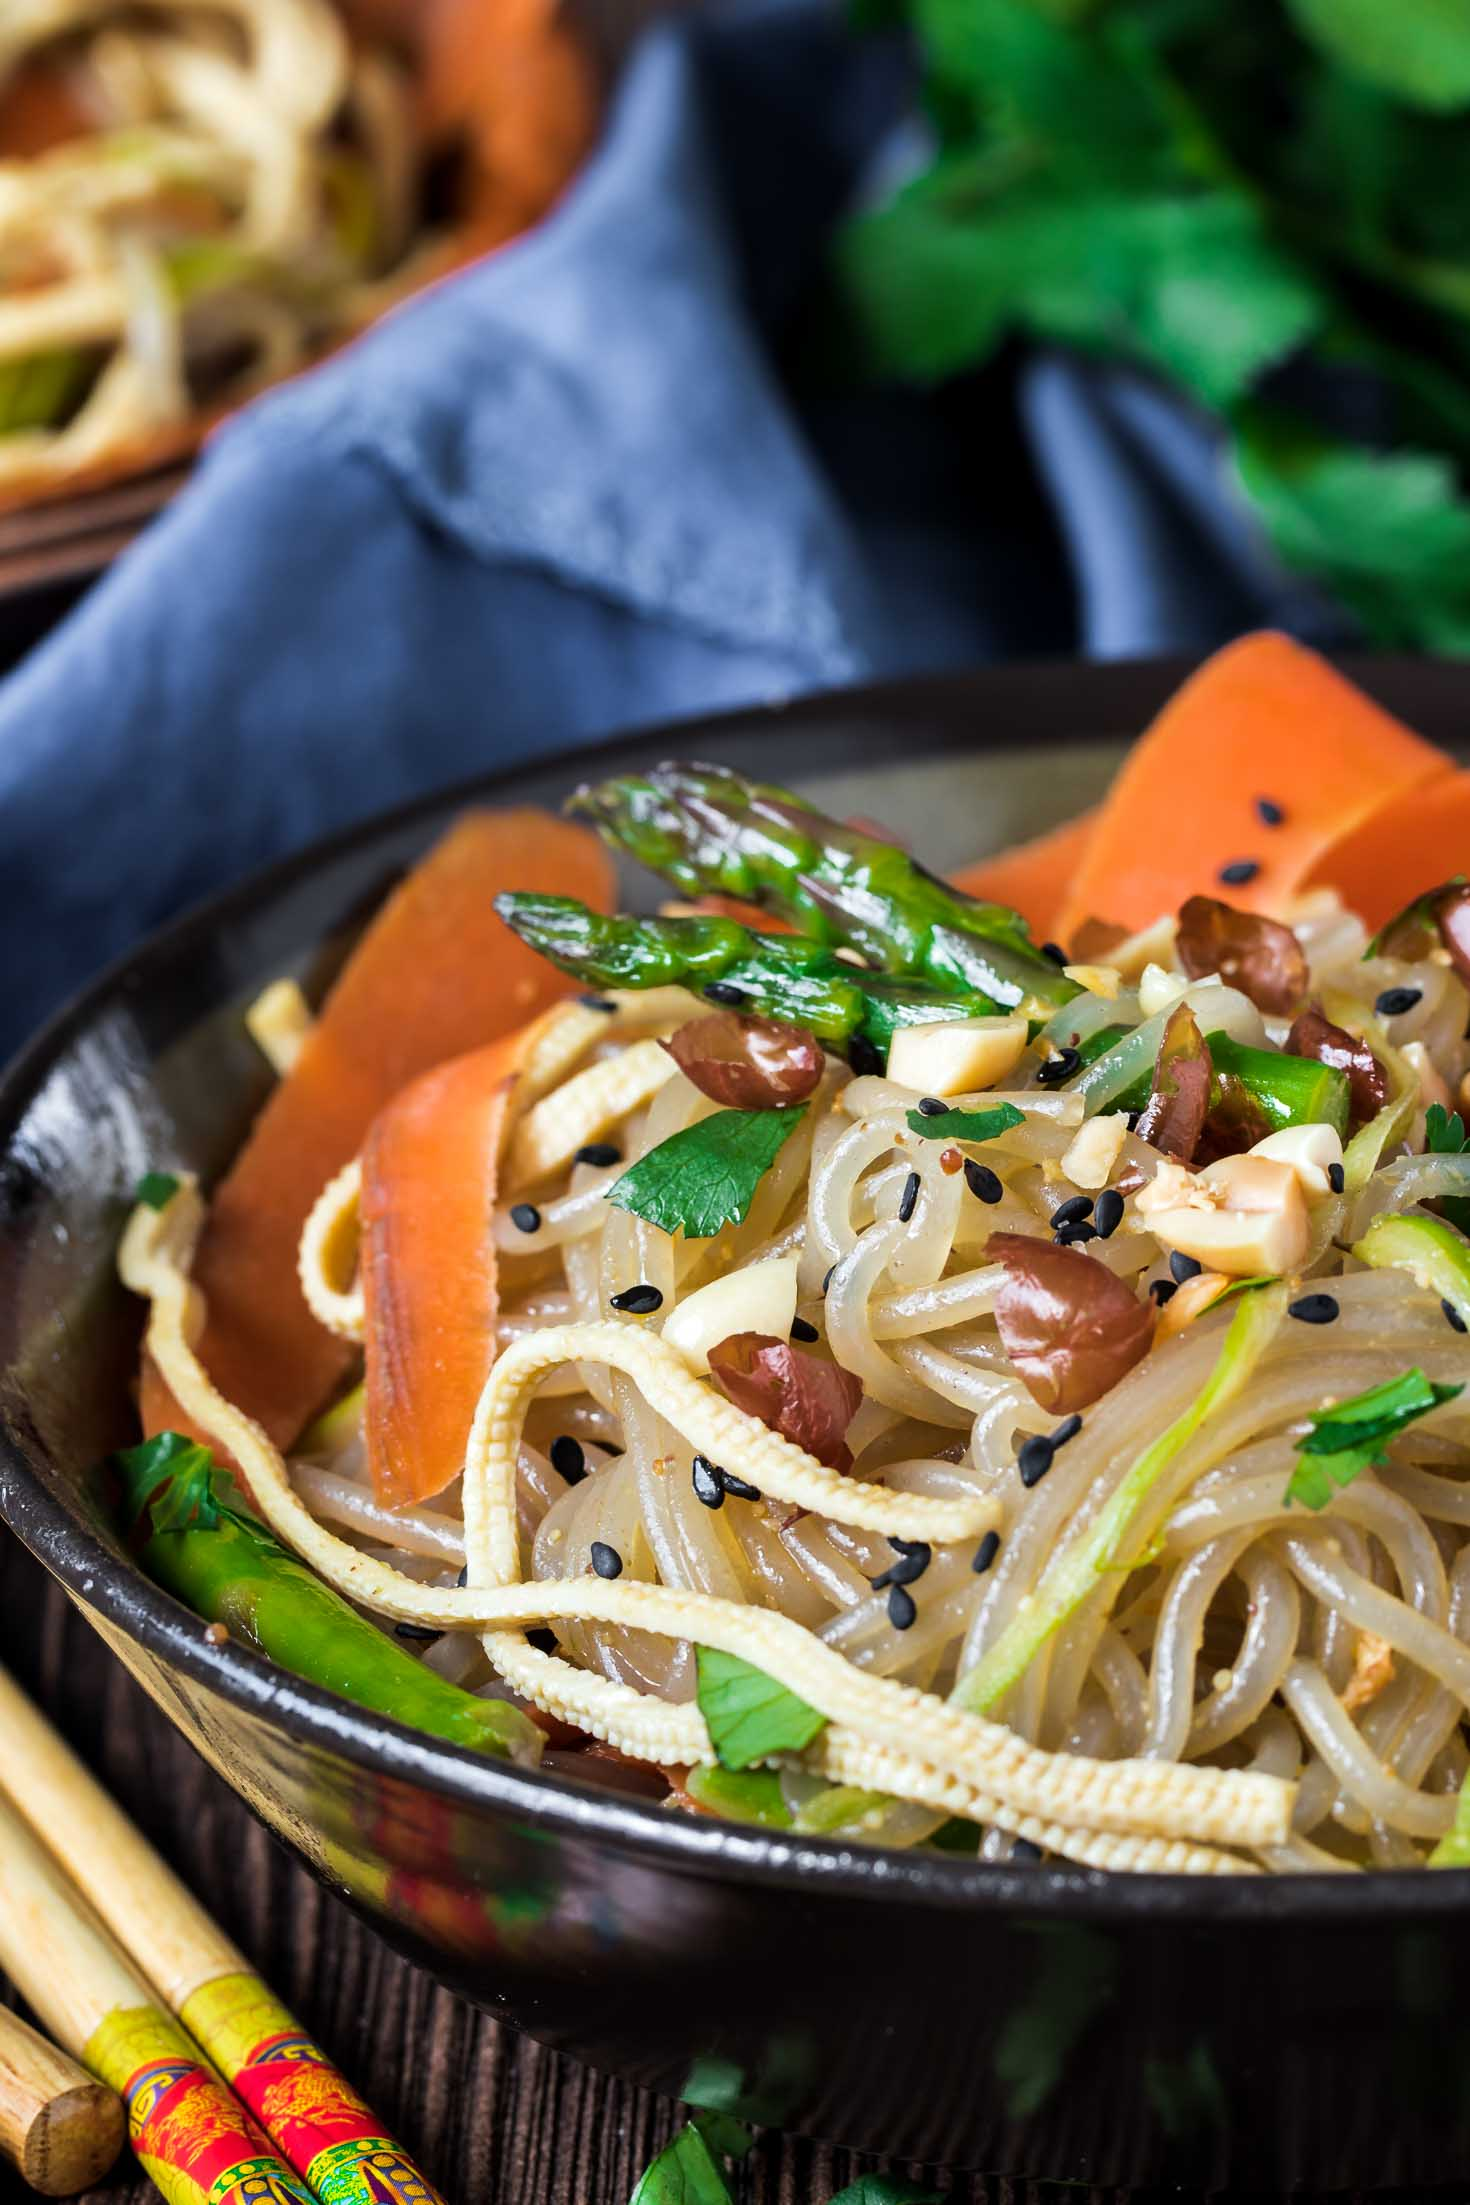 Vegan Korean Glass Noodle Stir-Fry with Tofu Slices (JapChae)-close up view-a bowl of noodles garnished with roasted peanuts and fresh cilantro on a board